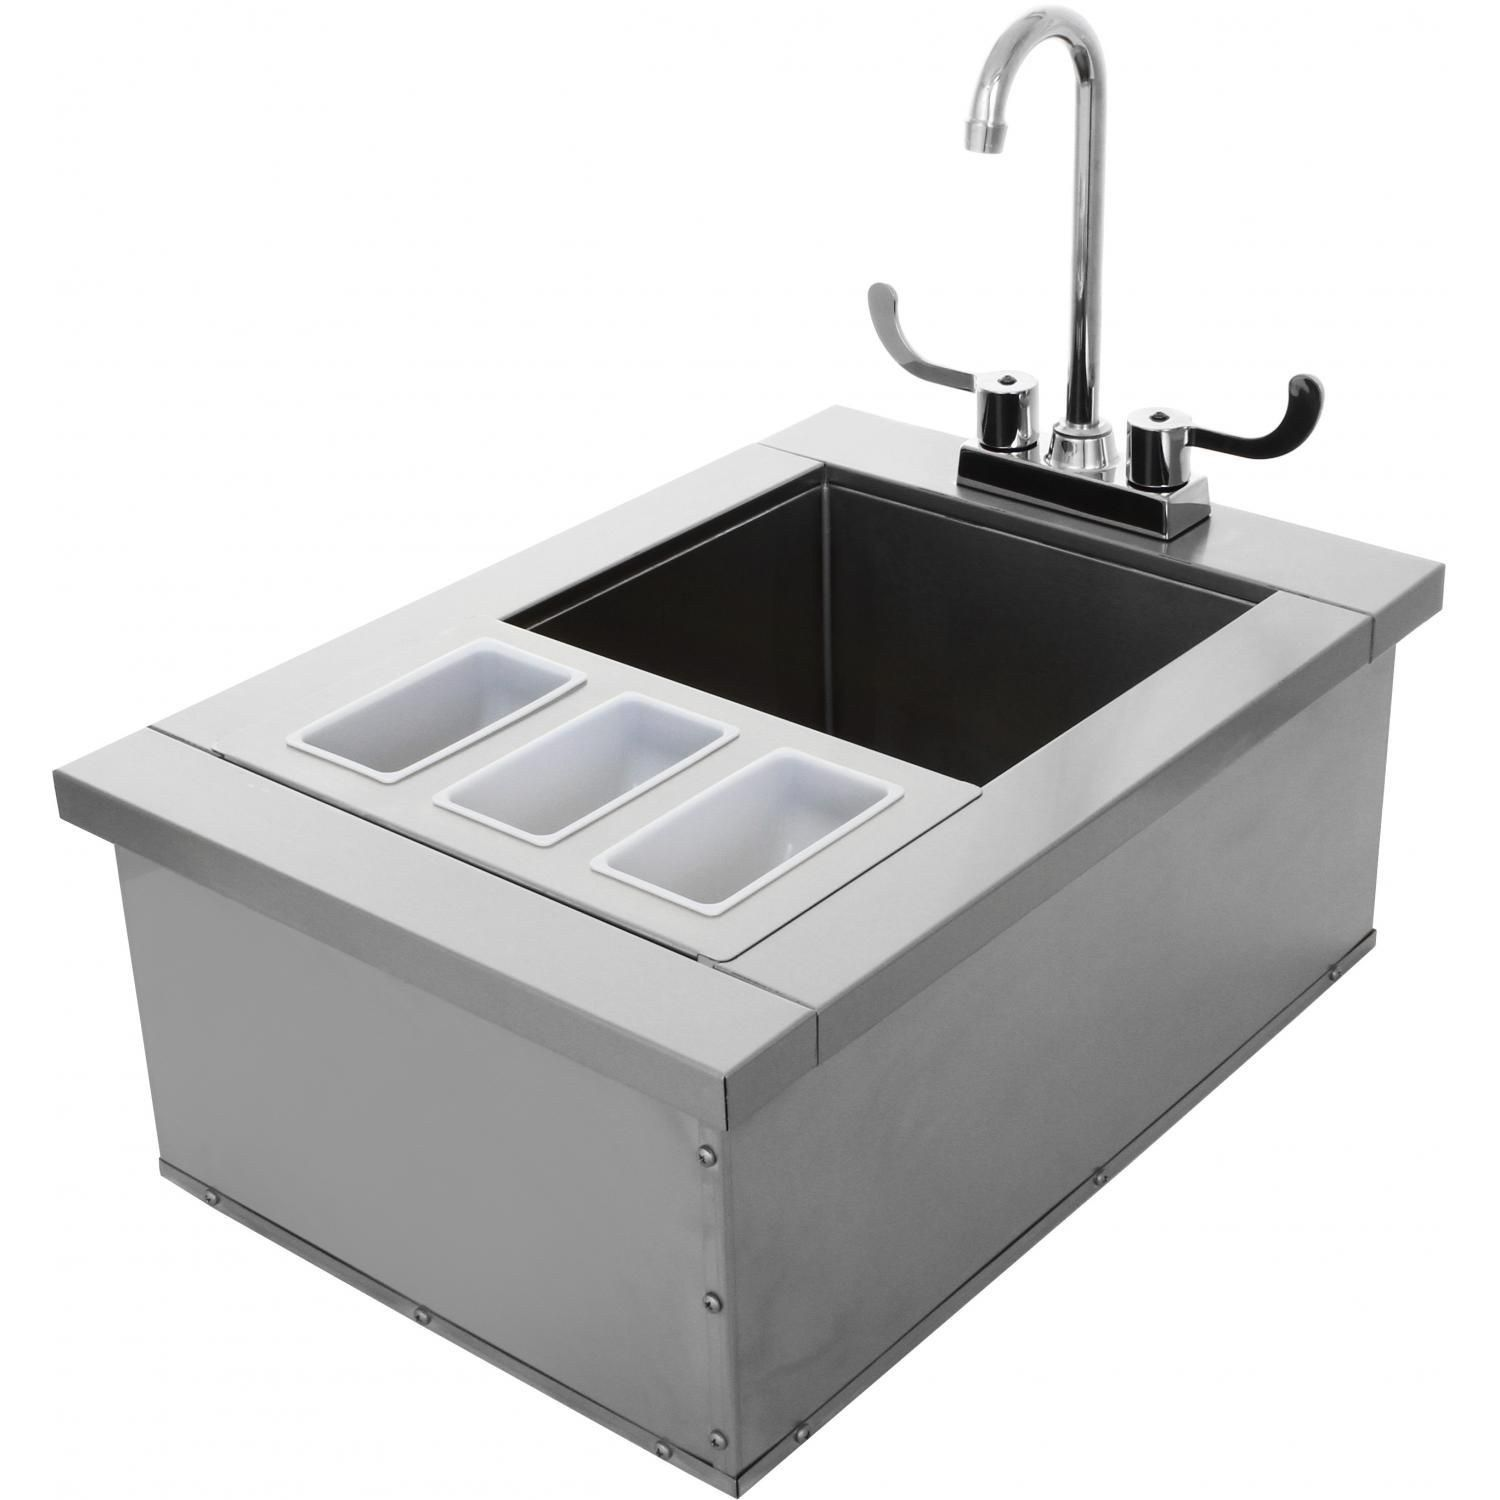 Awesome Outdoor Bar Sink With Faucet Check More At Https Homefurnitureone Com Awesome Outdoor Bar Sink With Faucet